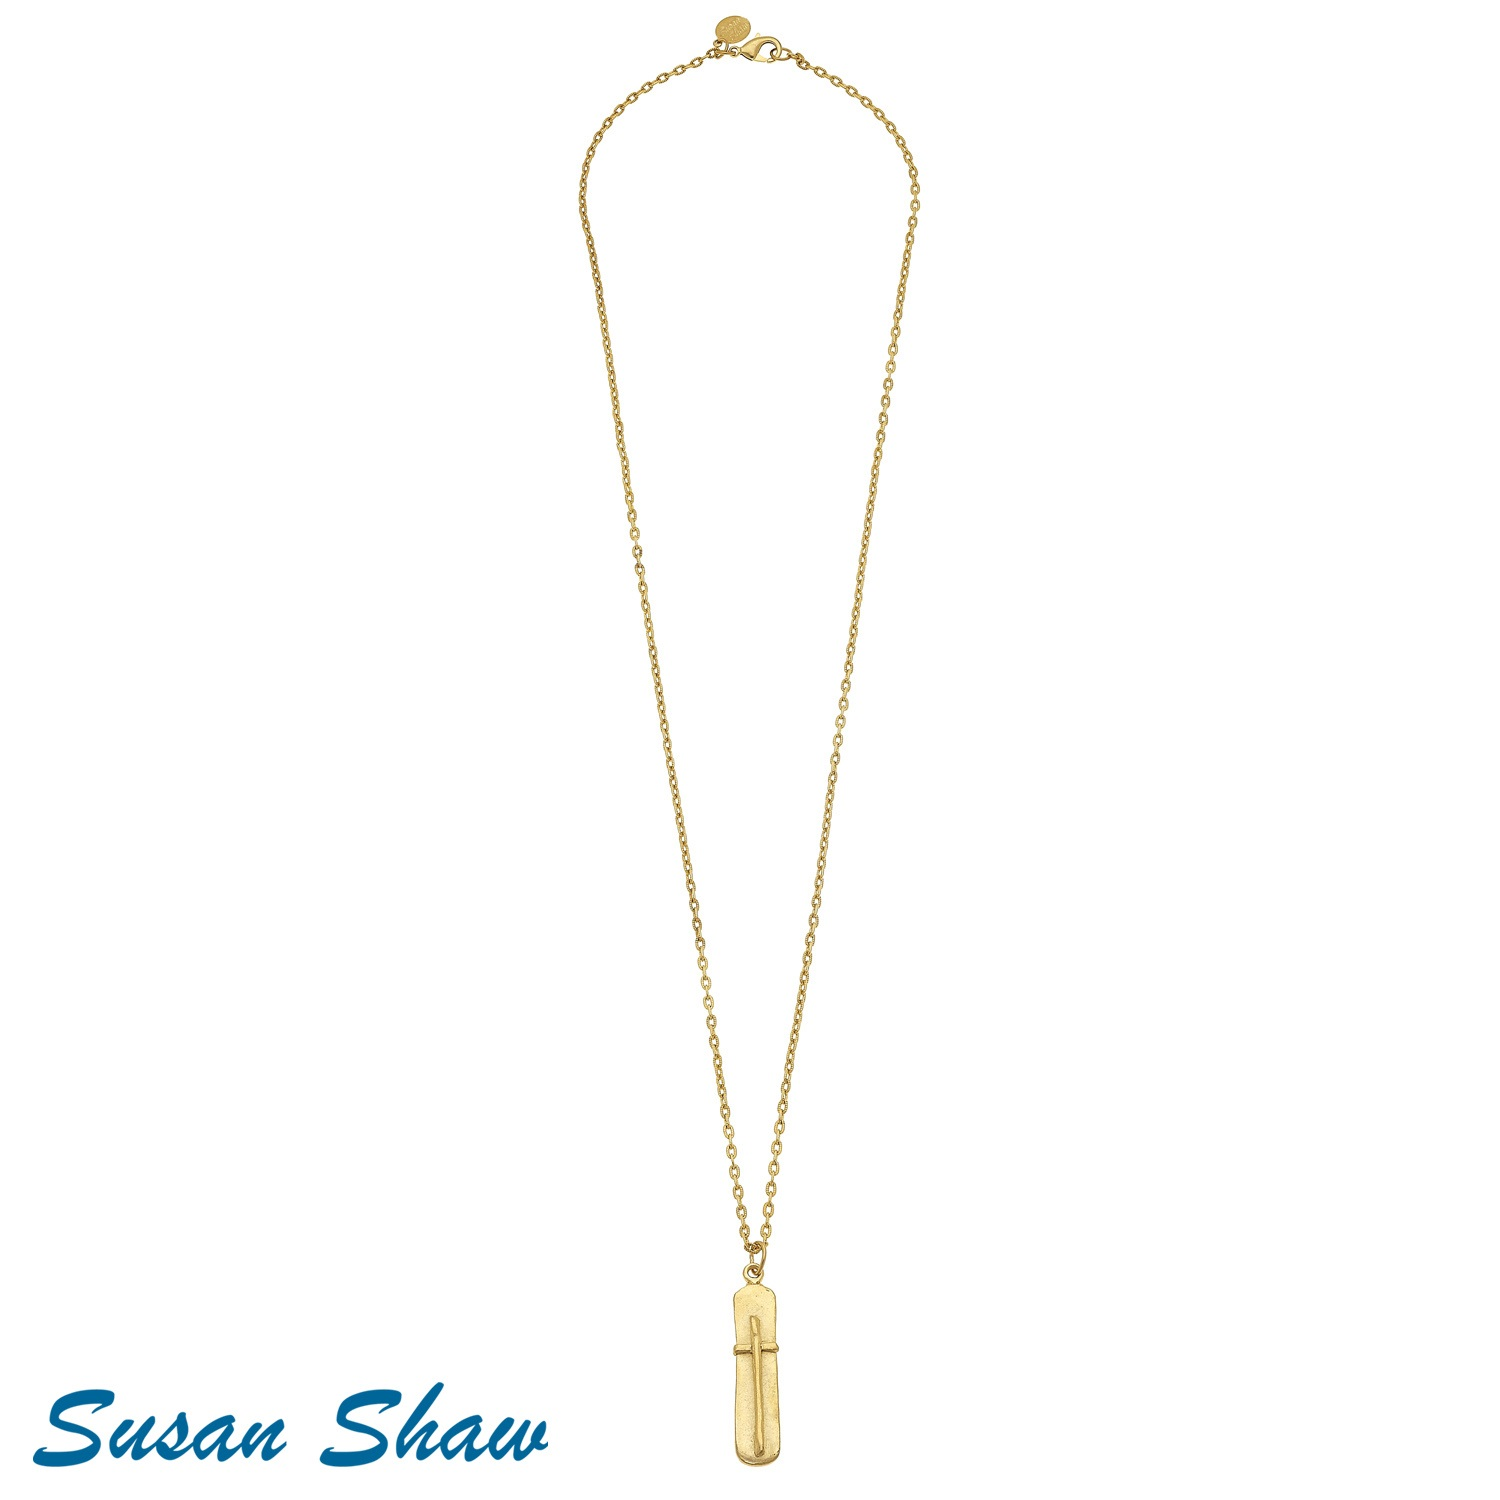 "SUSAN SHAW 30"" GOLD BAR WITH CROSS CHAIN NECKLACE"